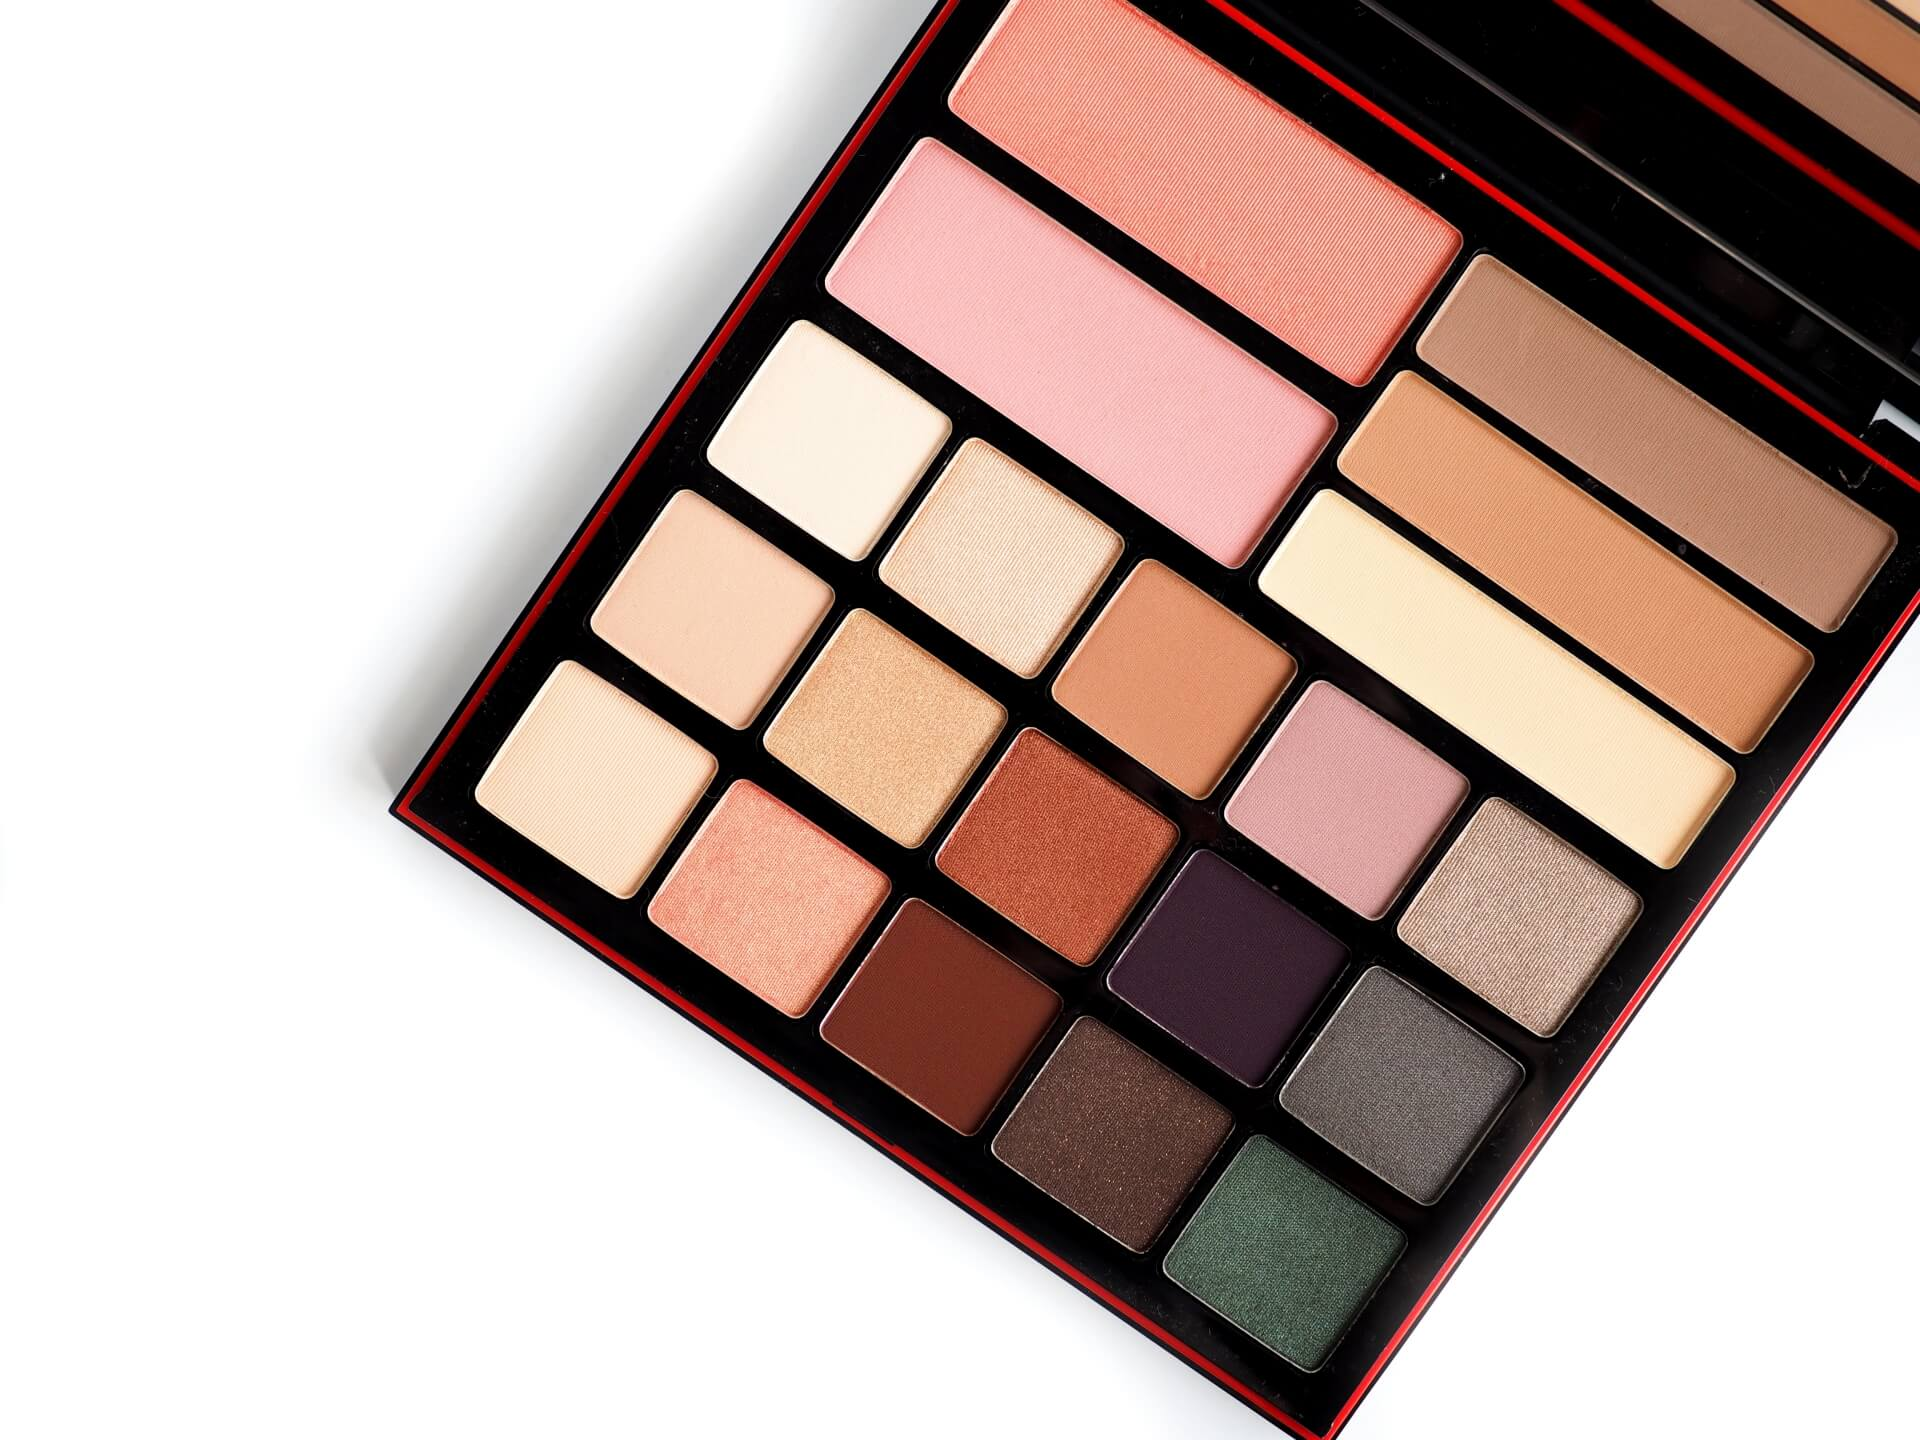 Smashbox Drawn In. Decked Out. Shadow + Contour + Blush Palette